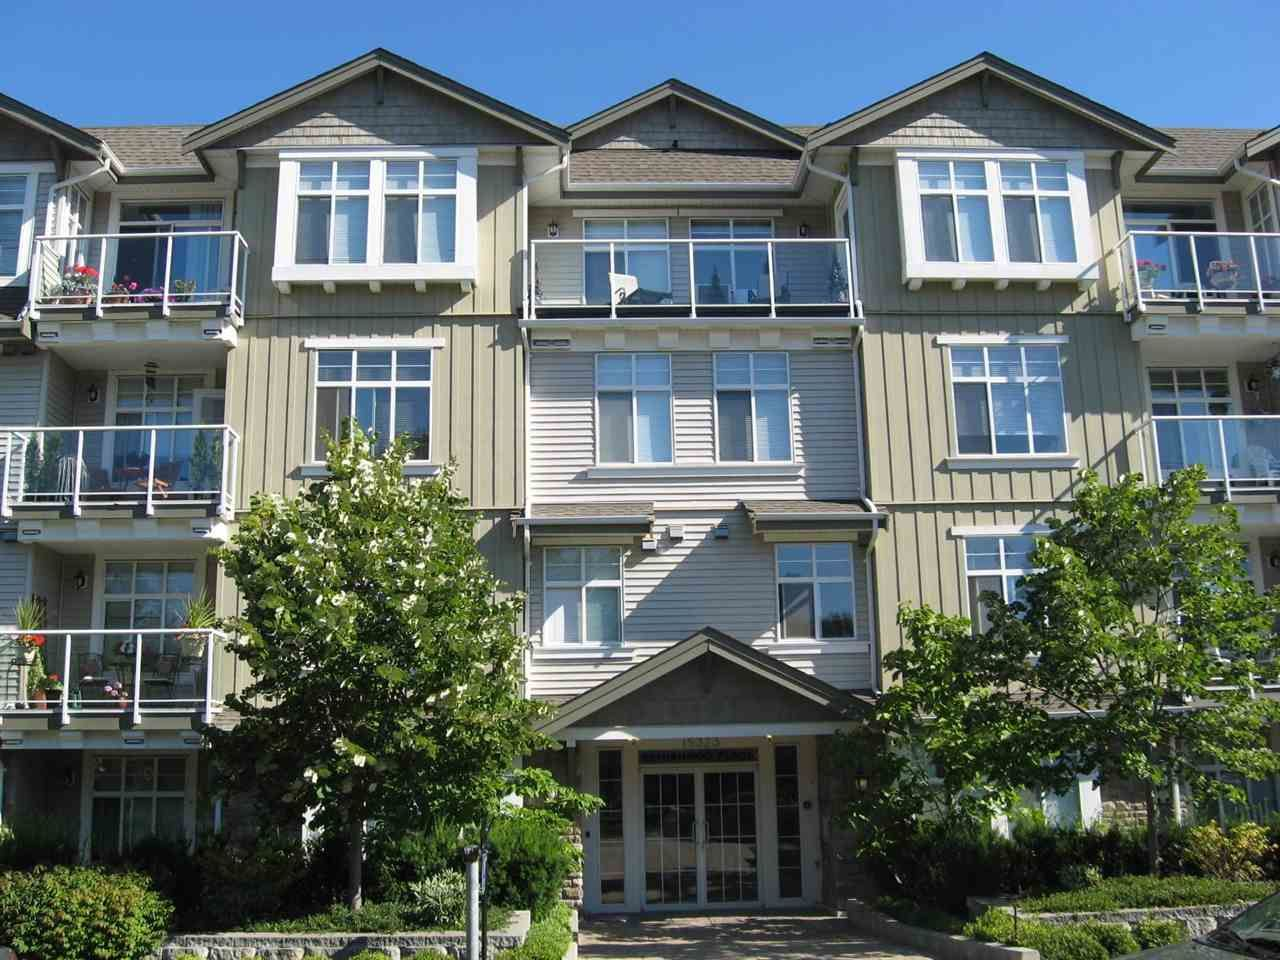 """Main Photo: 206 15323 17A Avenue in Surrey: King George Corridor Condo for sale in """"Semiahmoo Place"""" (South Surrey White Rock)  : MLS®# R2590804"""